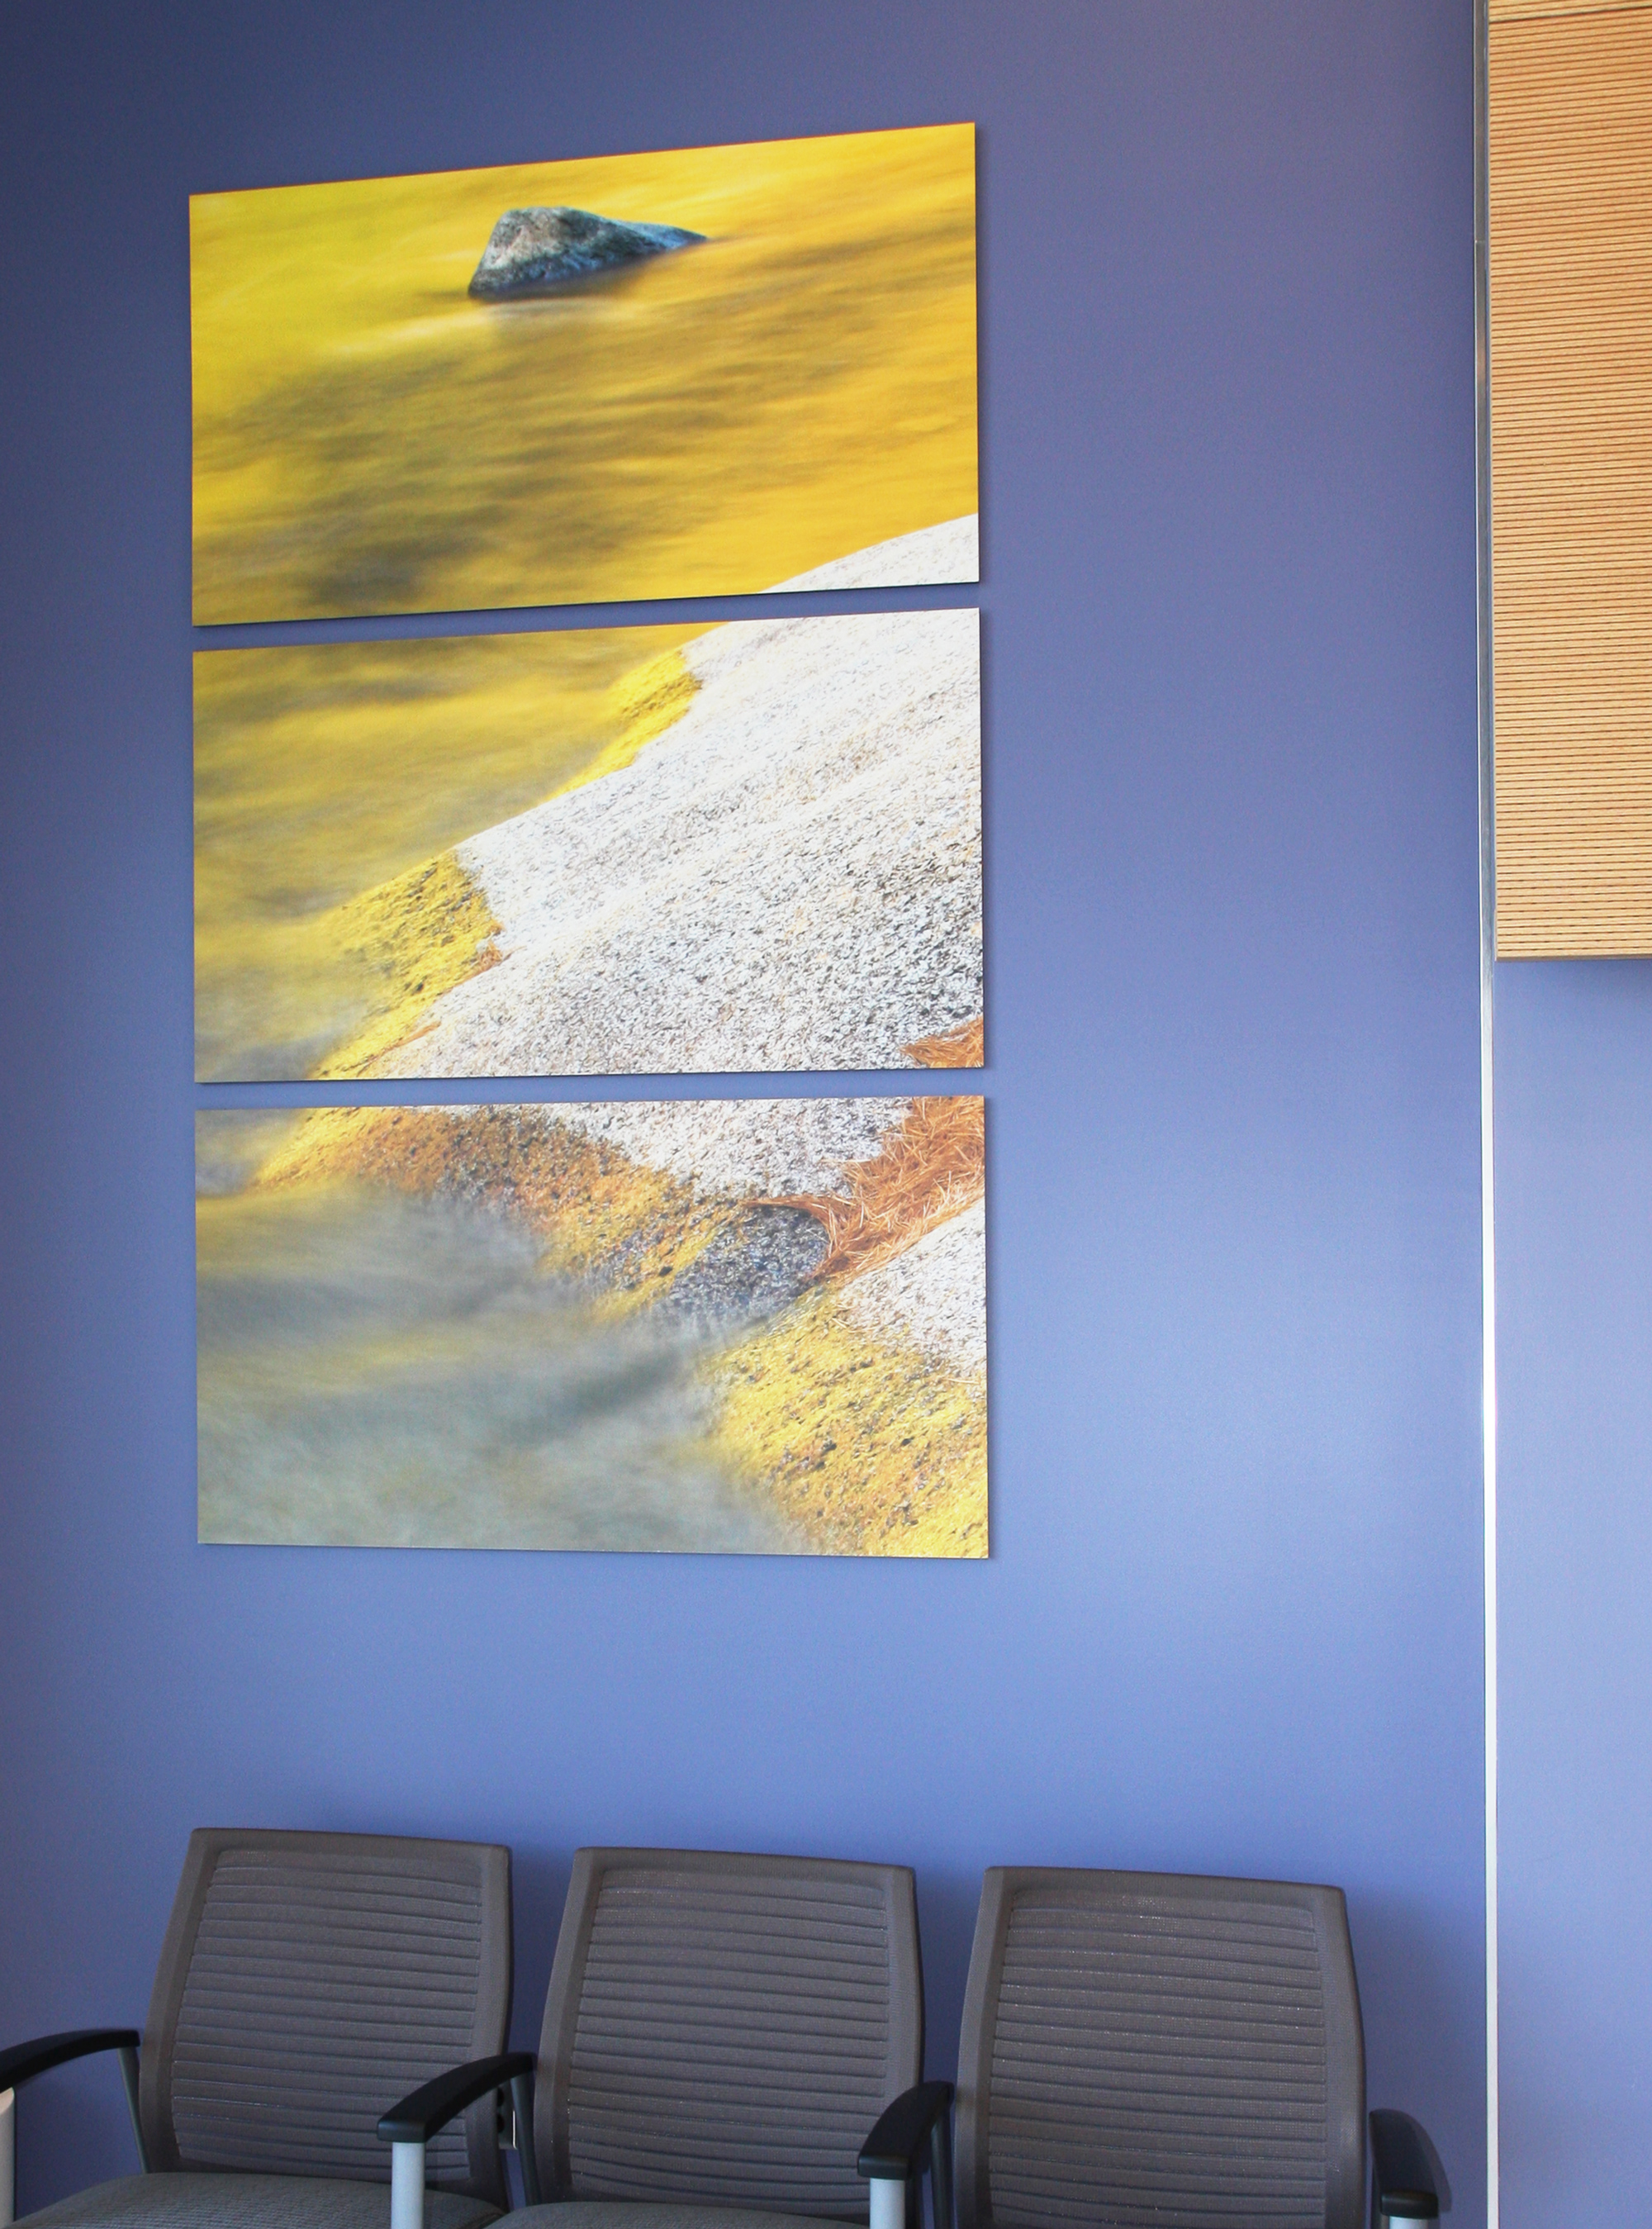 Photo of abstract landscape image using Moxie panels in waiting area of hospital